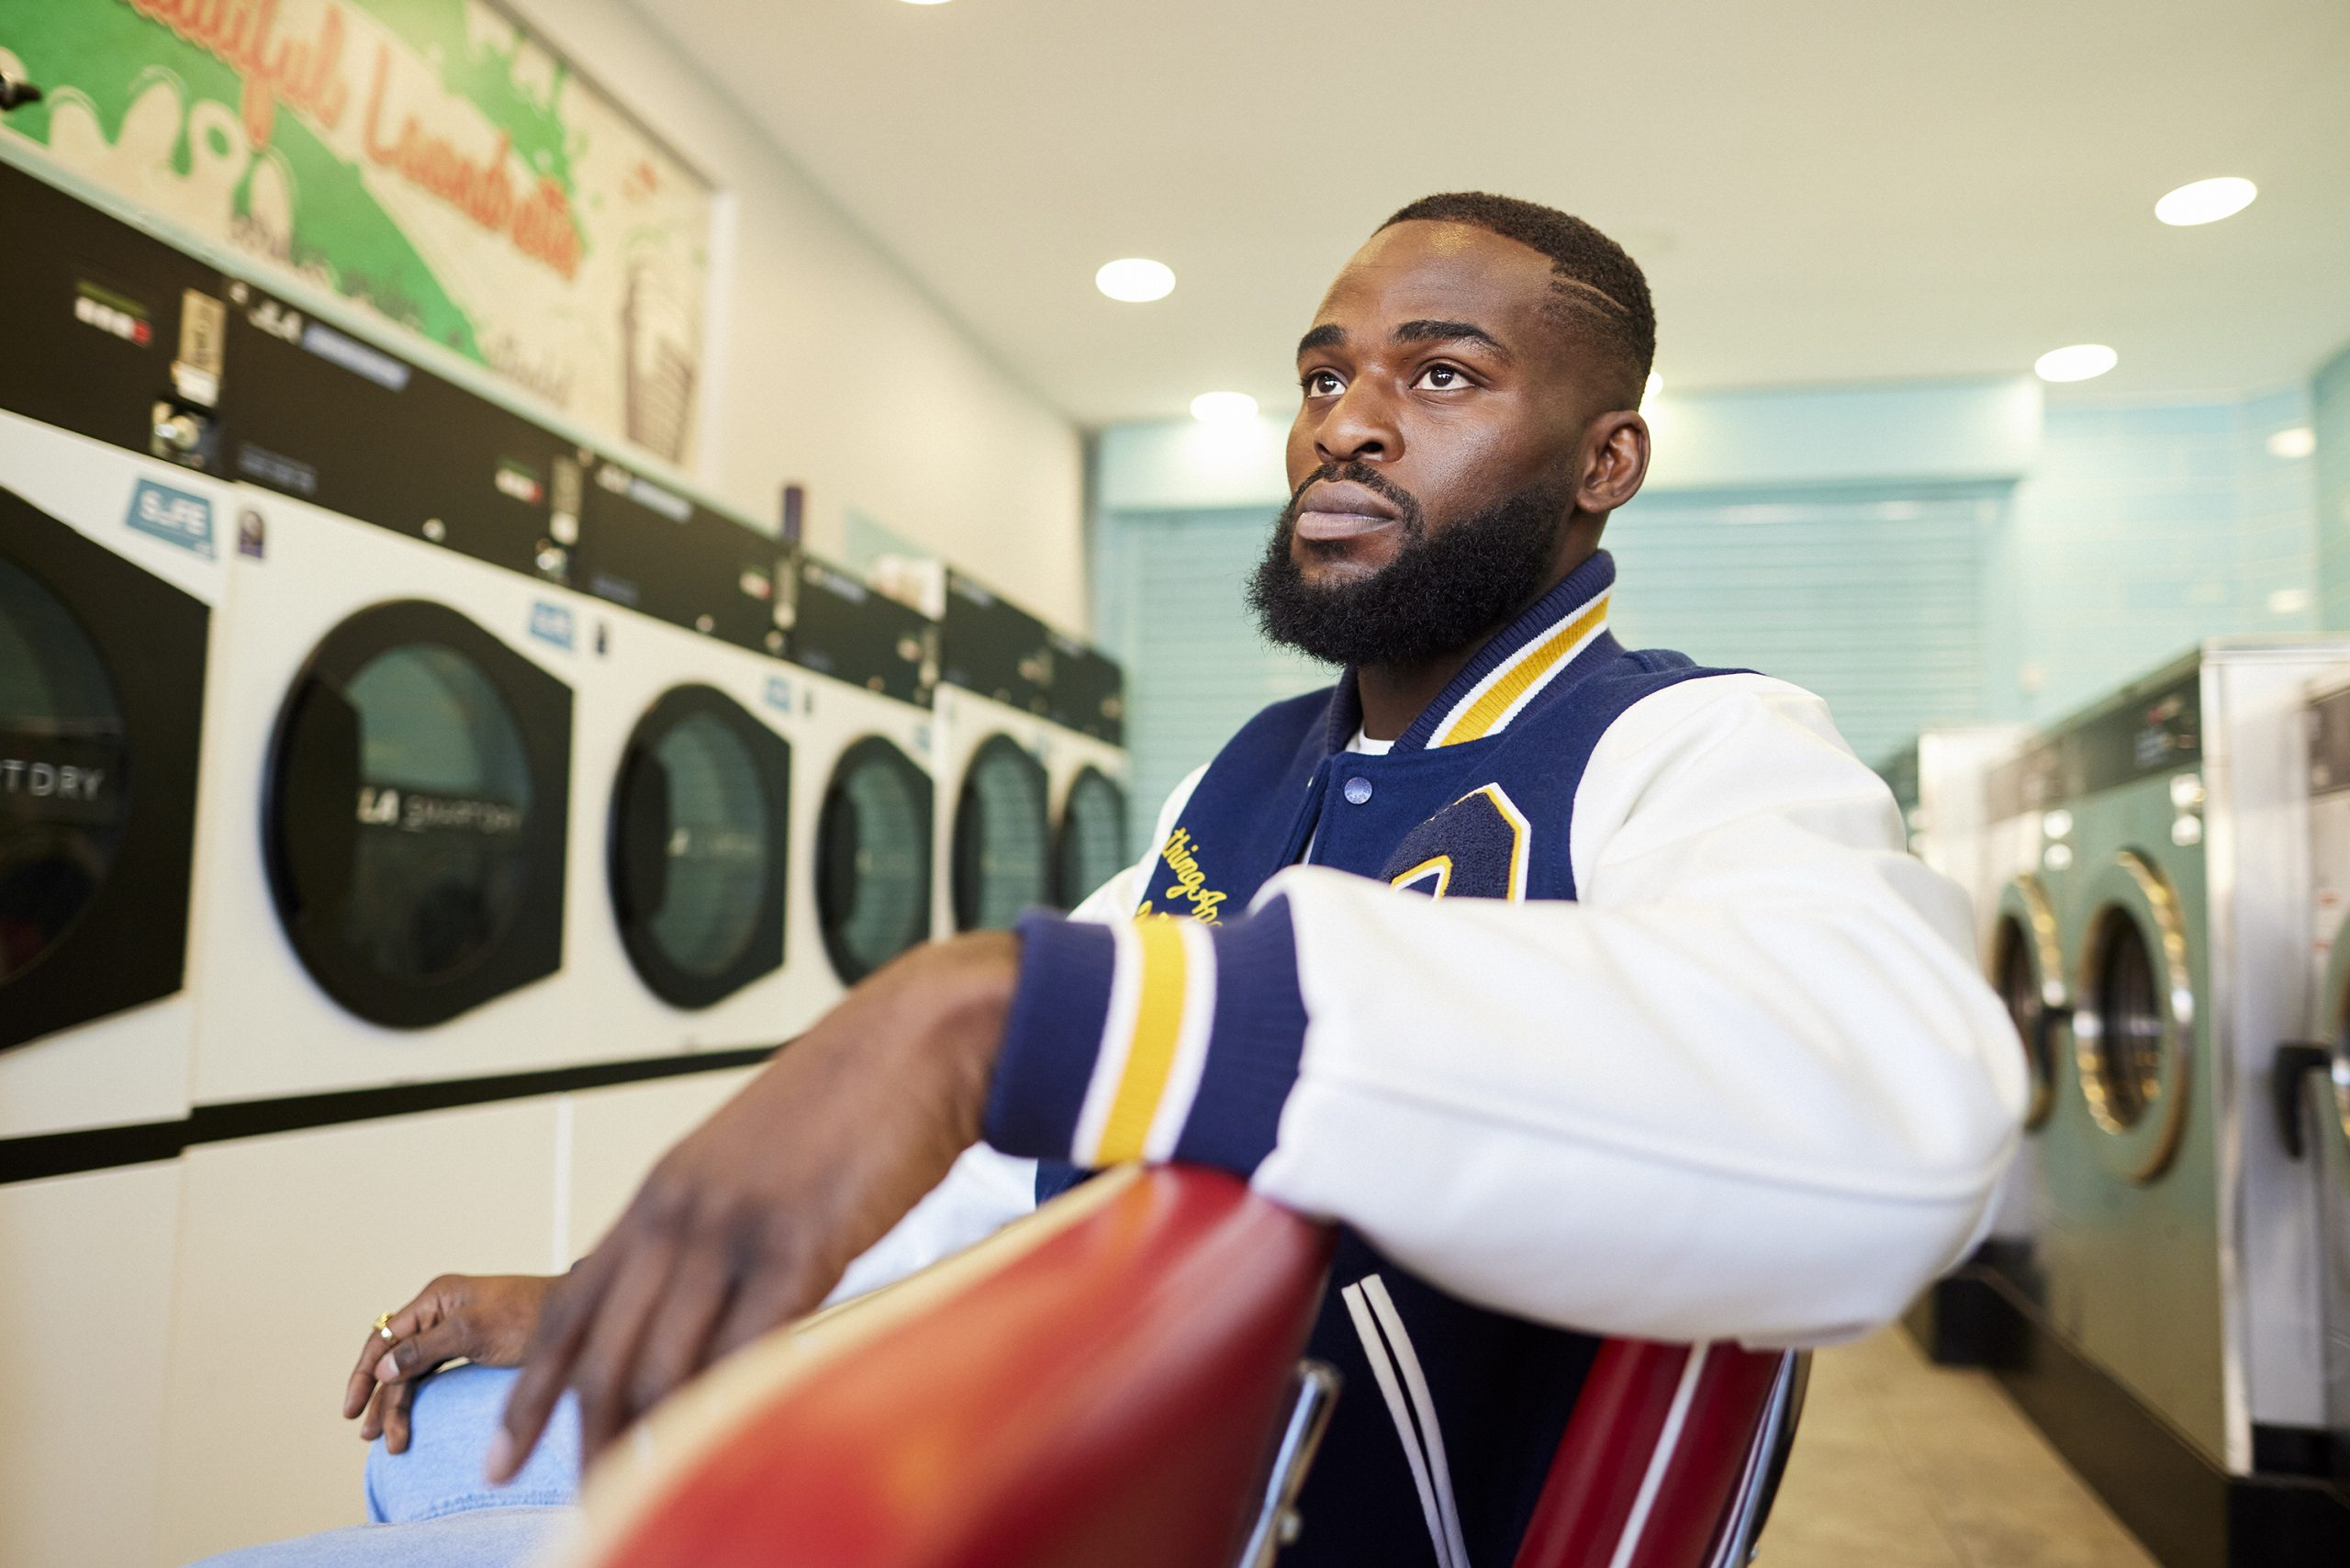 Joshua Buatsi sat on some red plastic chairs in a laundromat